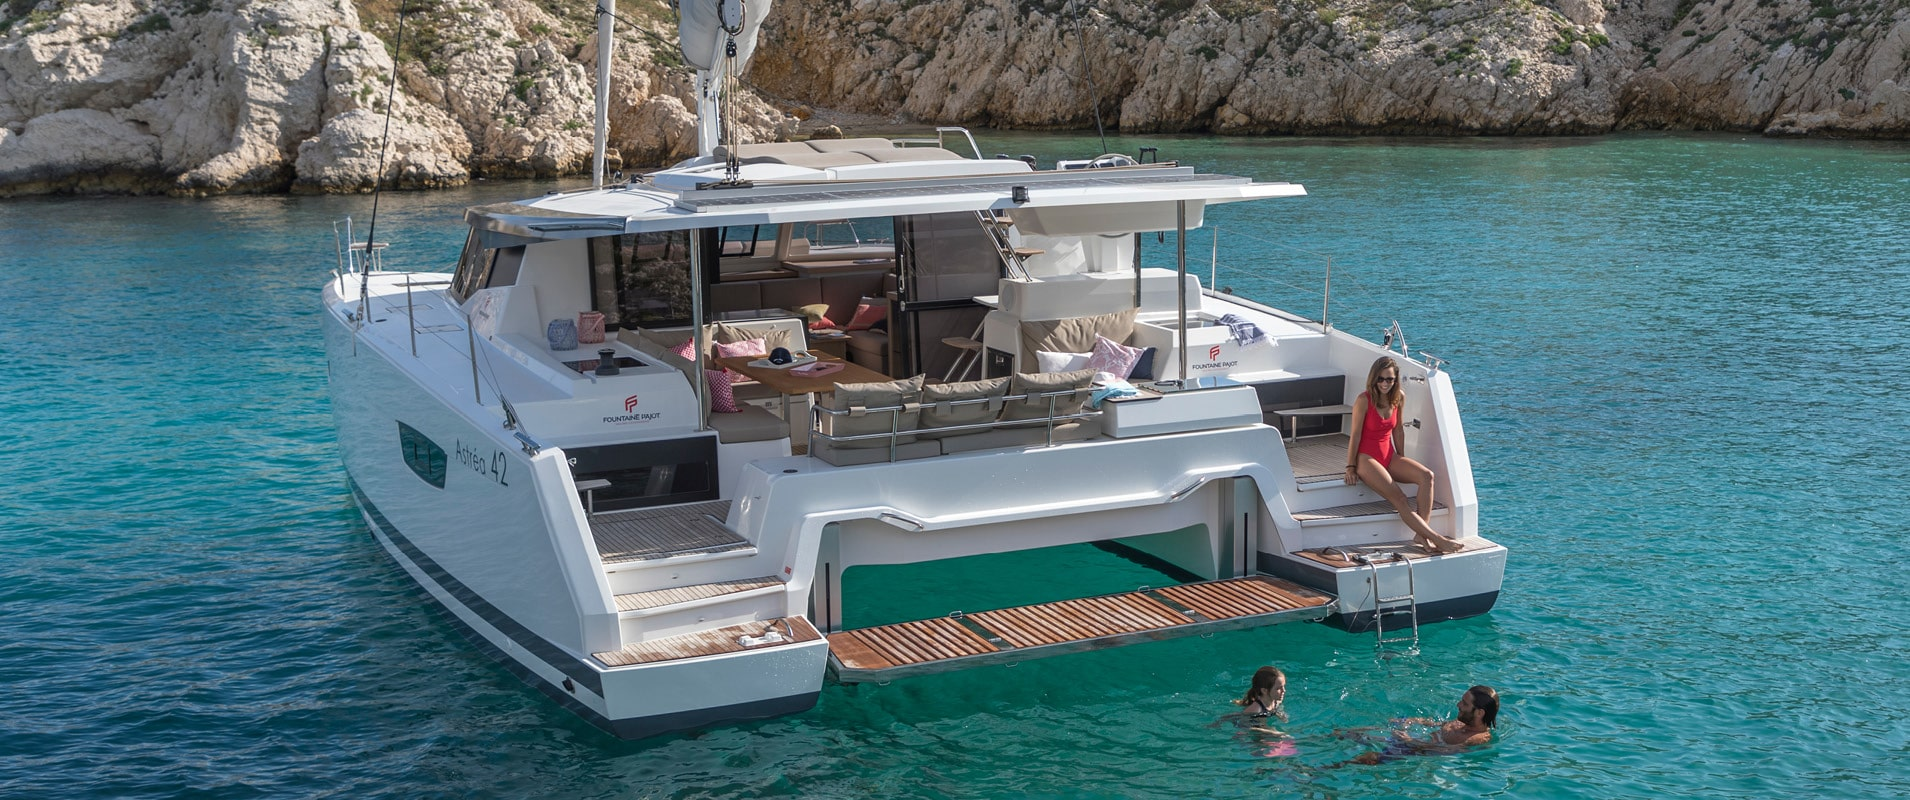 Yacht Badezimmer Astréa 42 The New Flagships Signed Fountaine Pajot